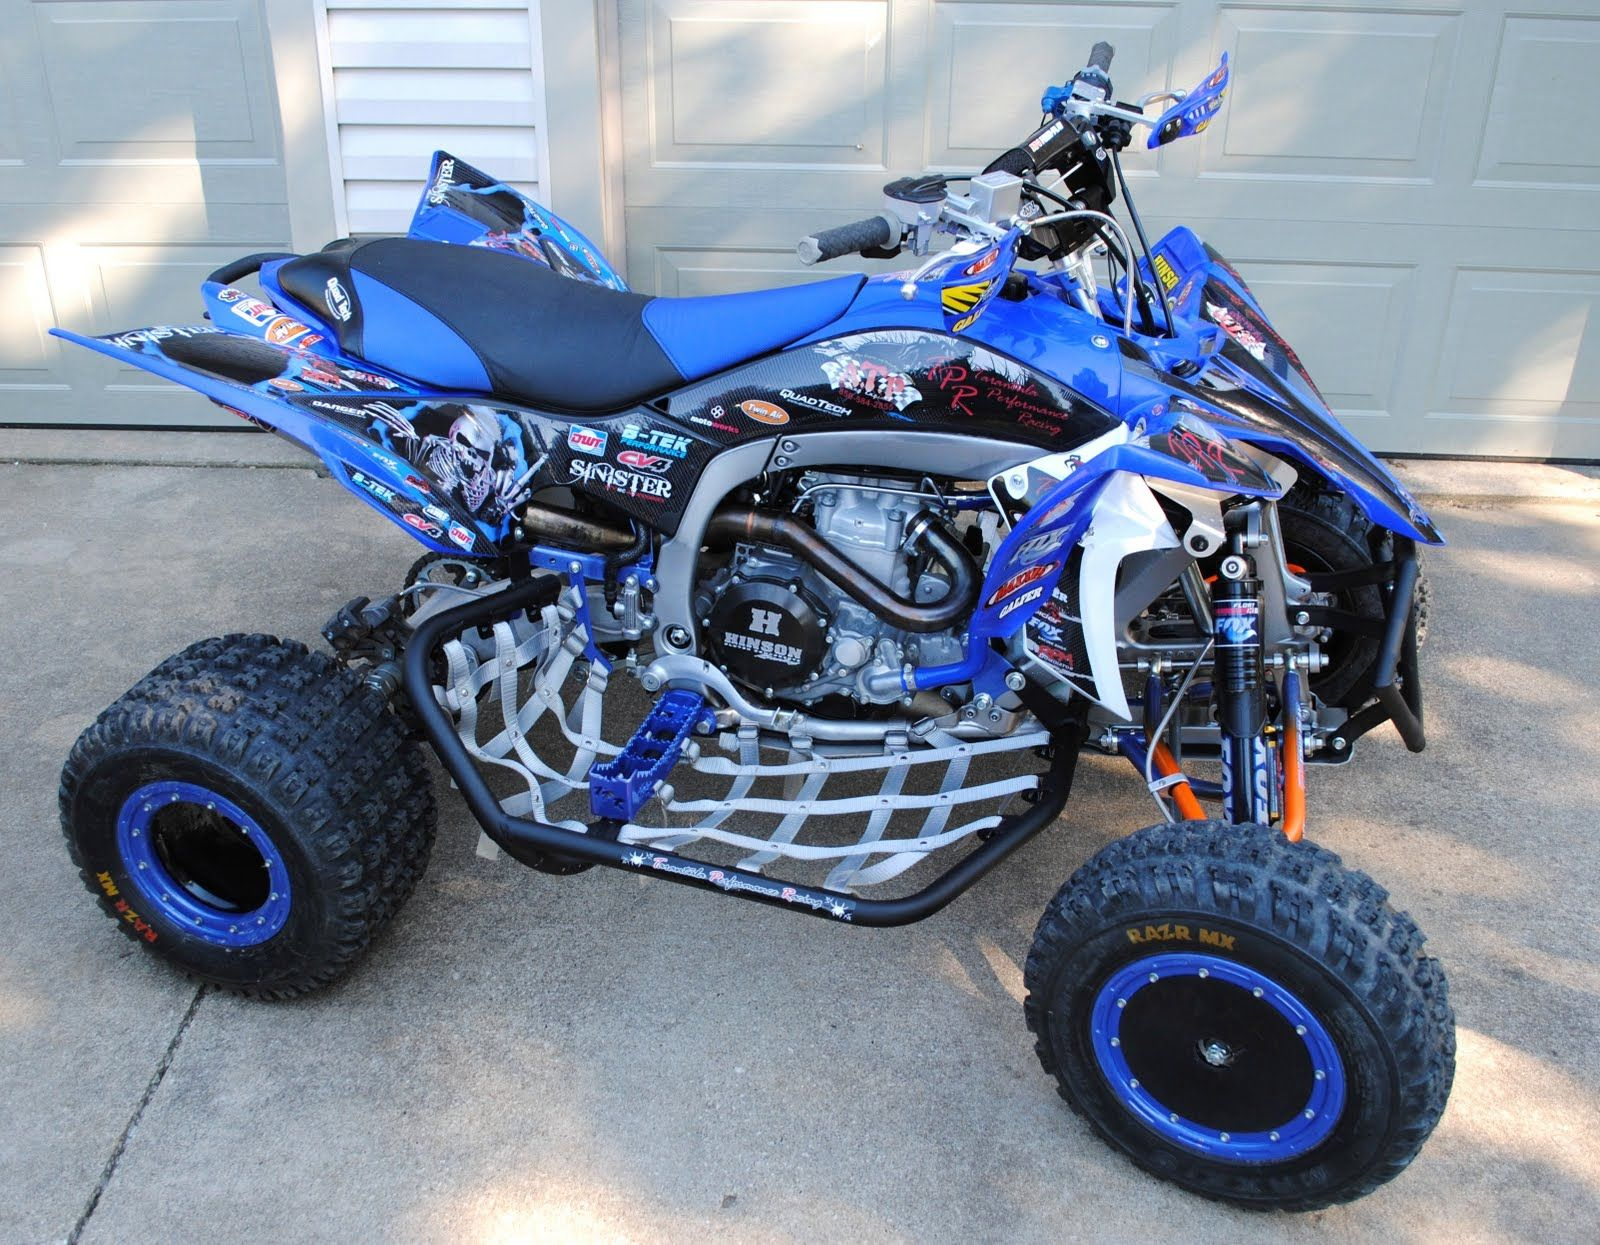 big-yamaha-yfz-450-r-51277.jpg 1,600×1,245 pixels | Stuff to Buy ...